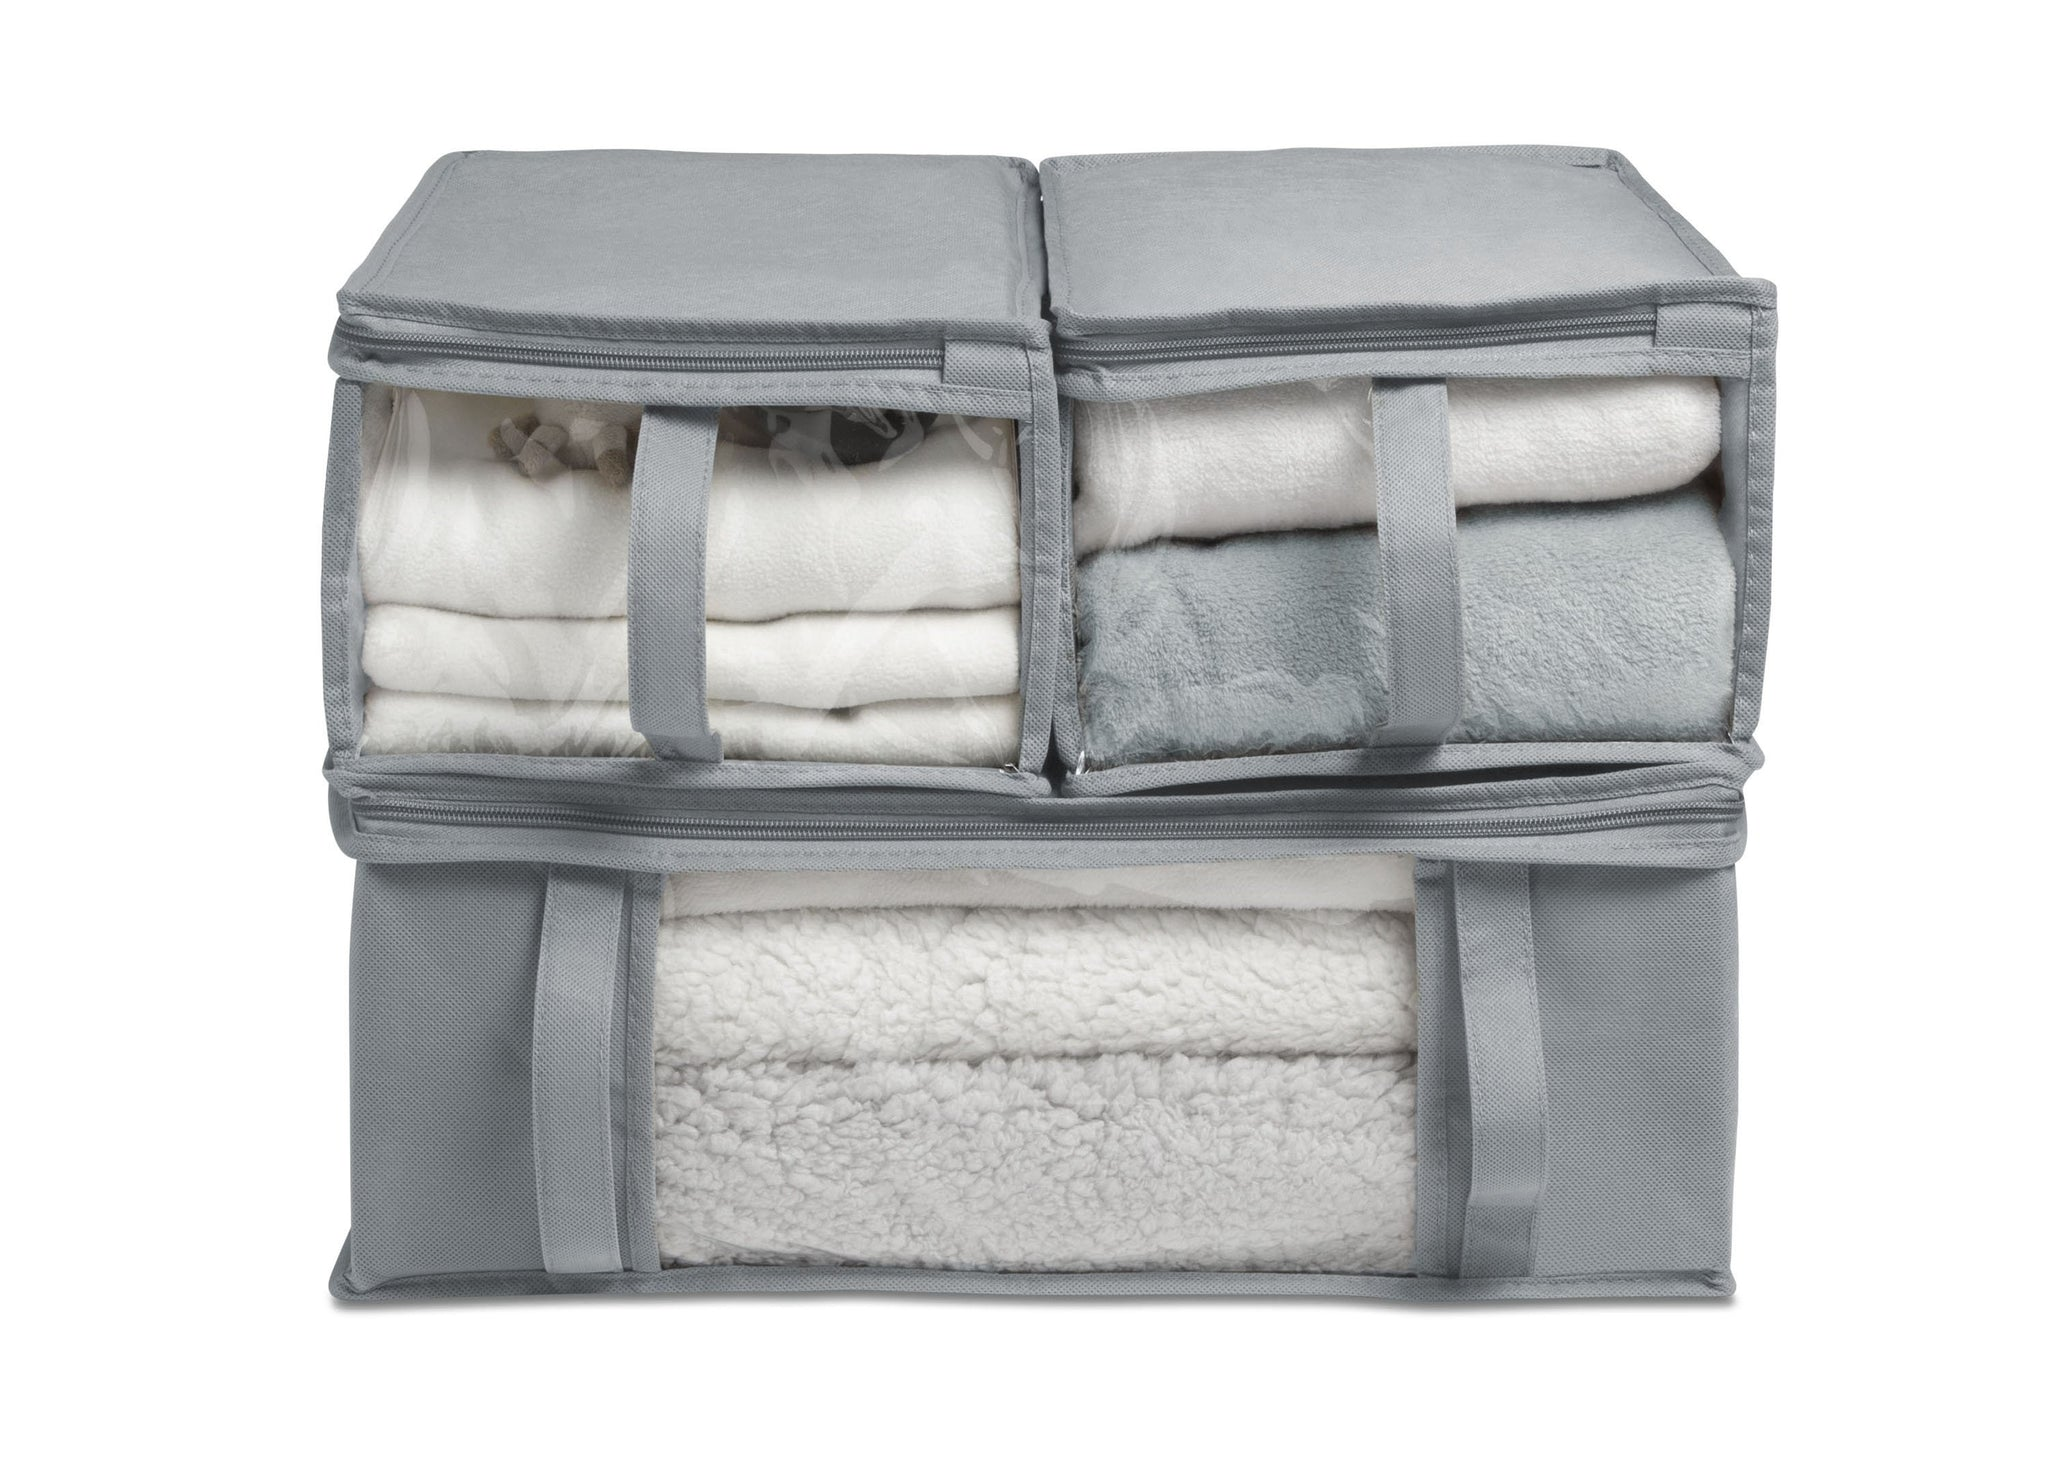 6-Piece Hide-A-Way/Underbed Storage Bag Set (Grey)